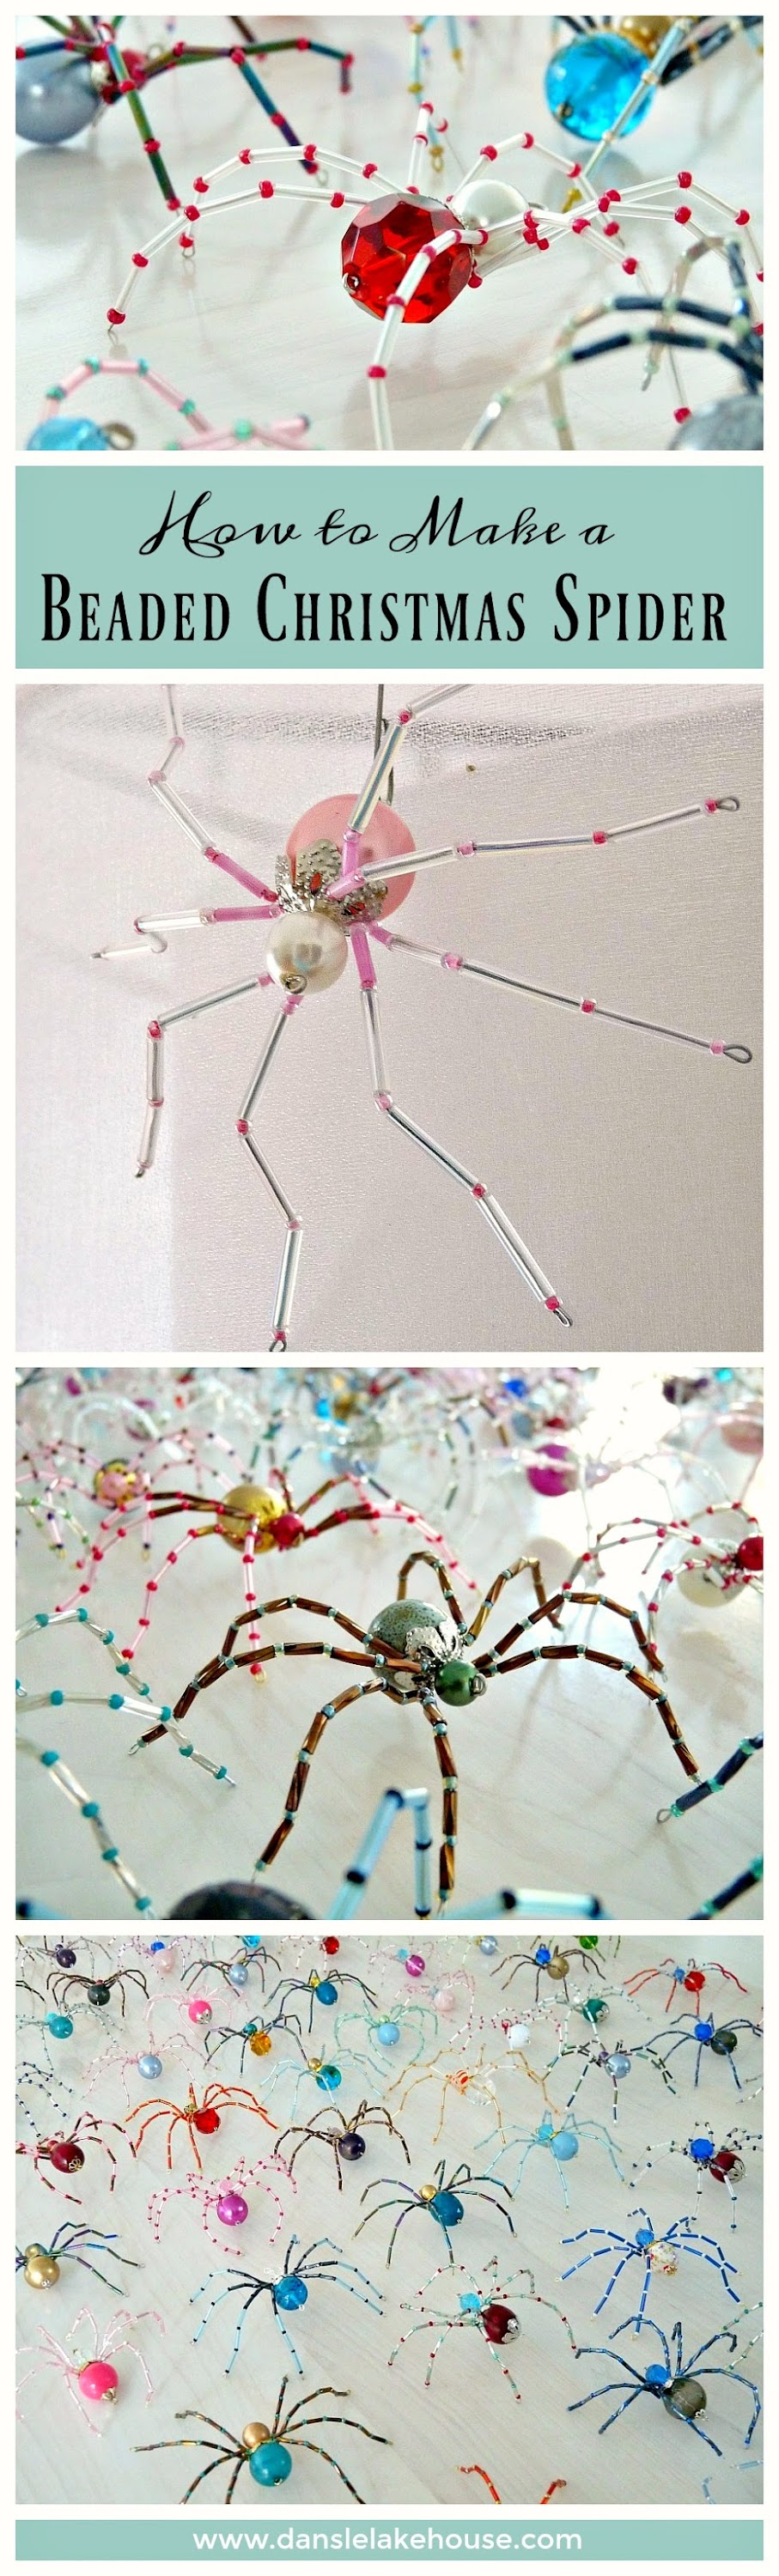 How to make a beaded christmas spider